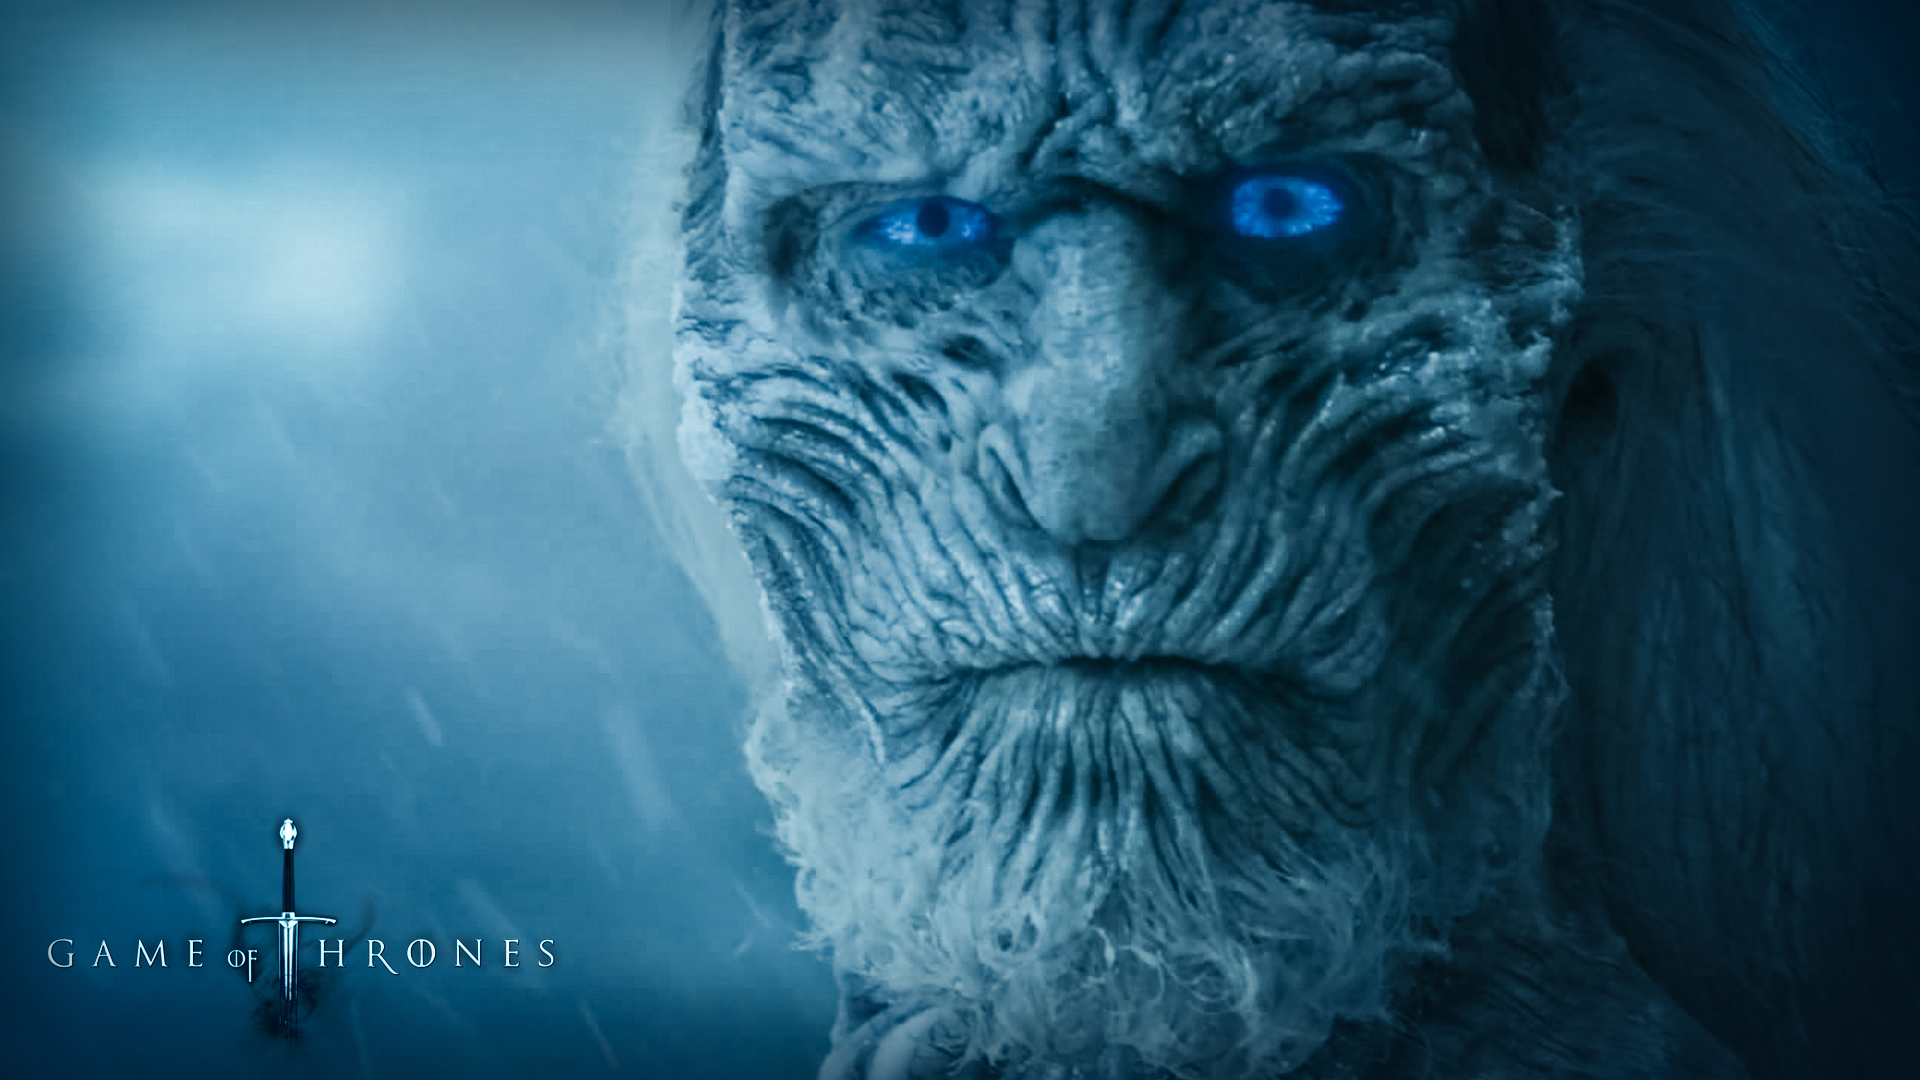 Game Of Thrones Wallpaper 1 By Alexandreholz On Deviantart